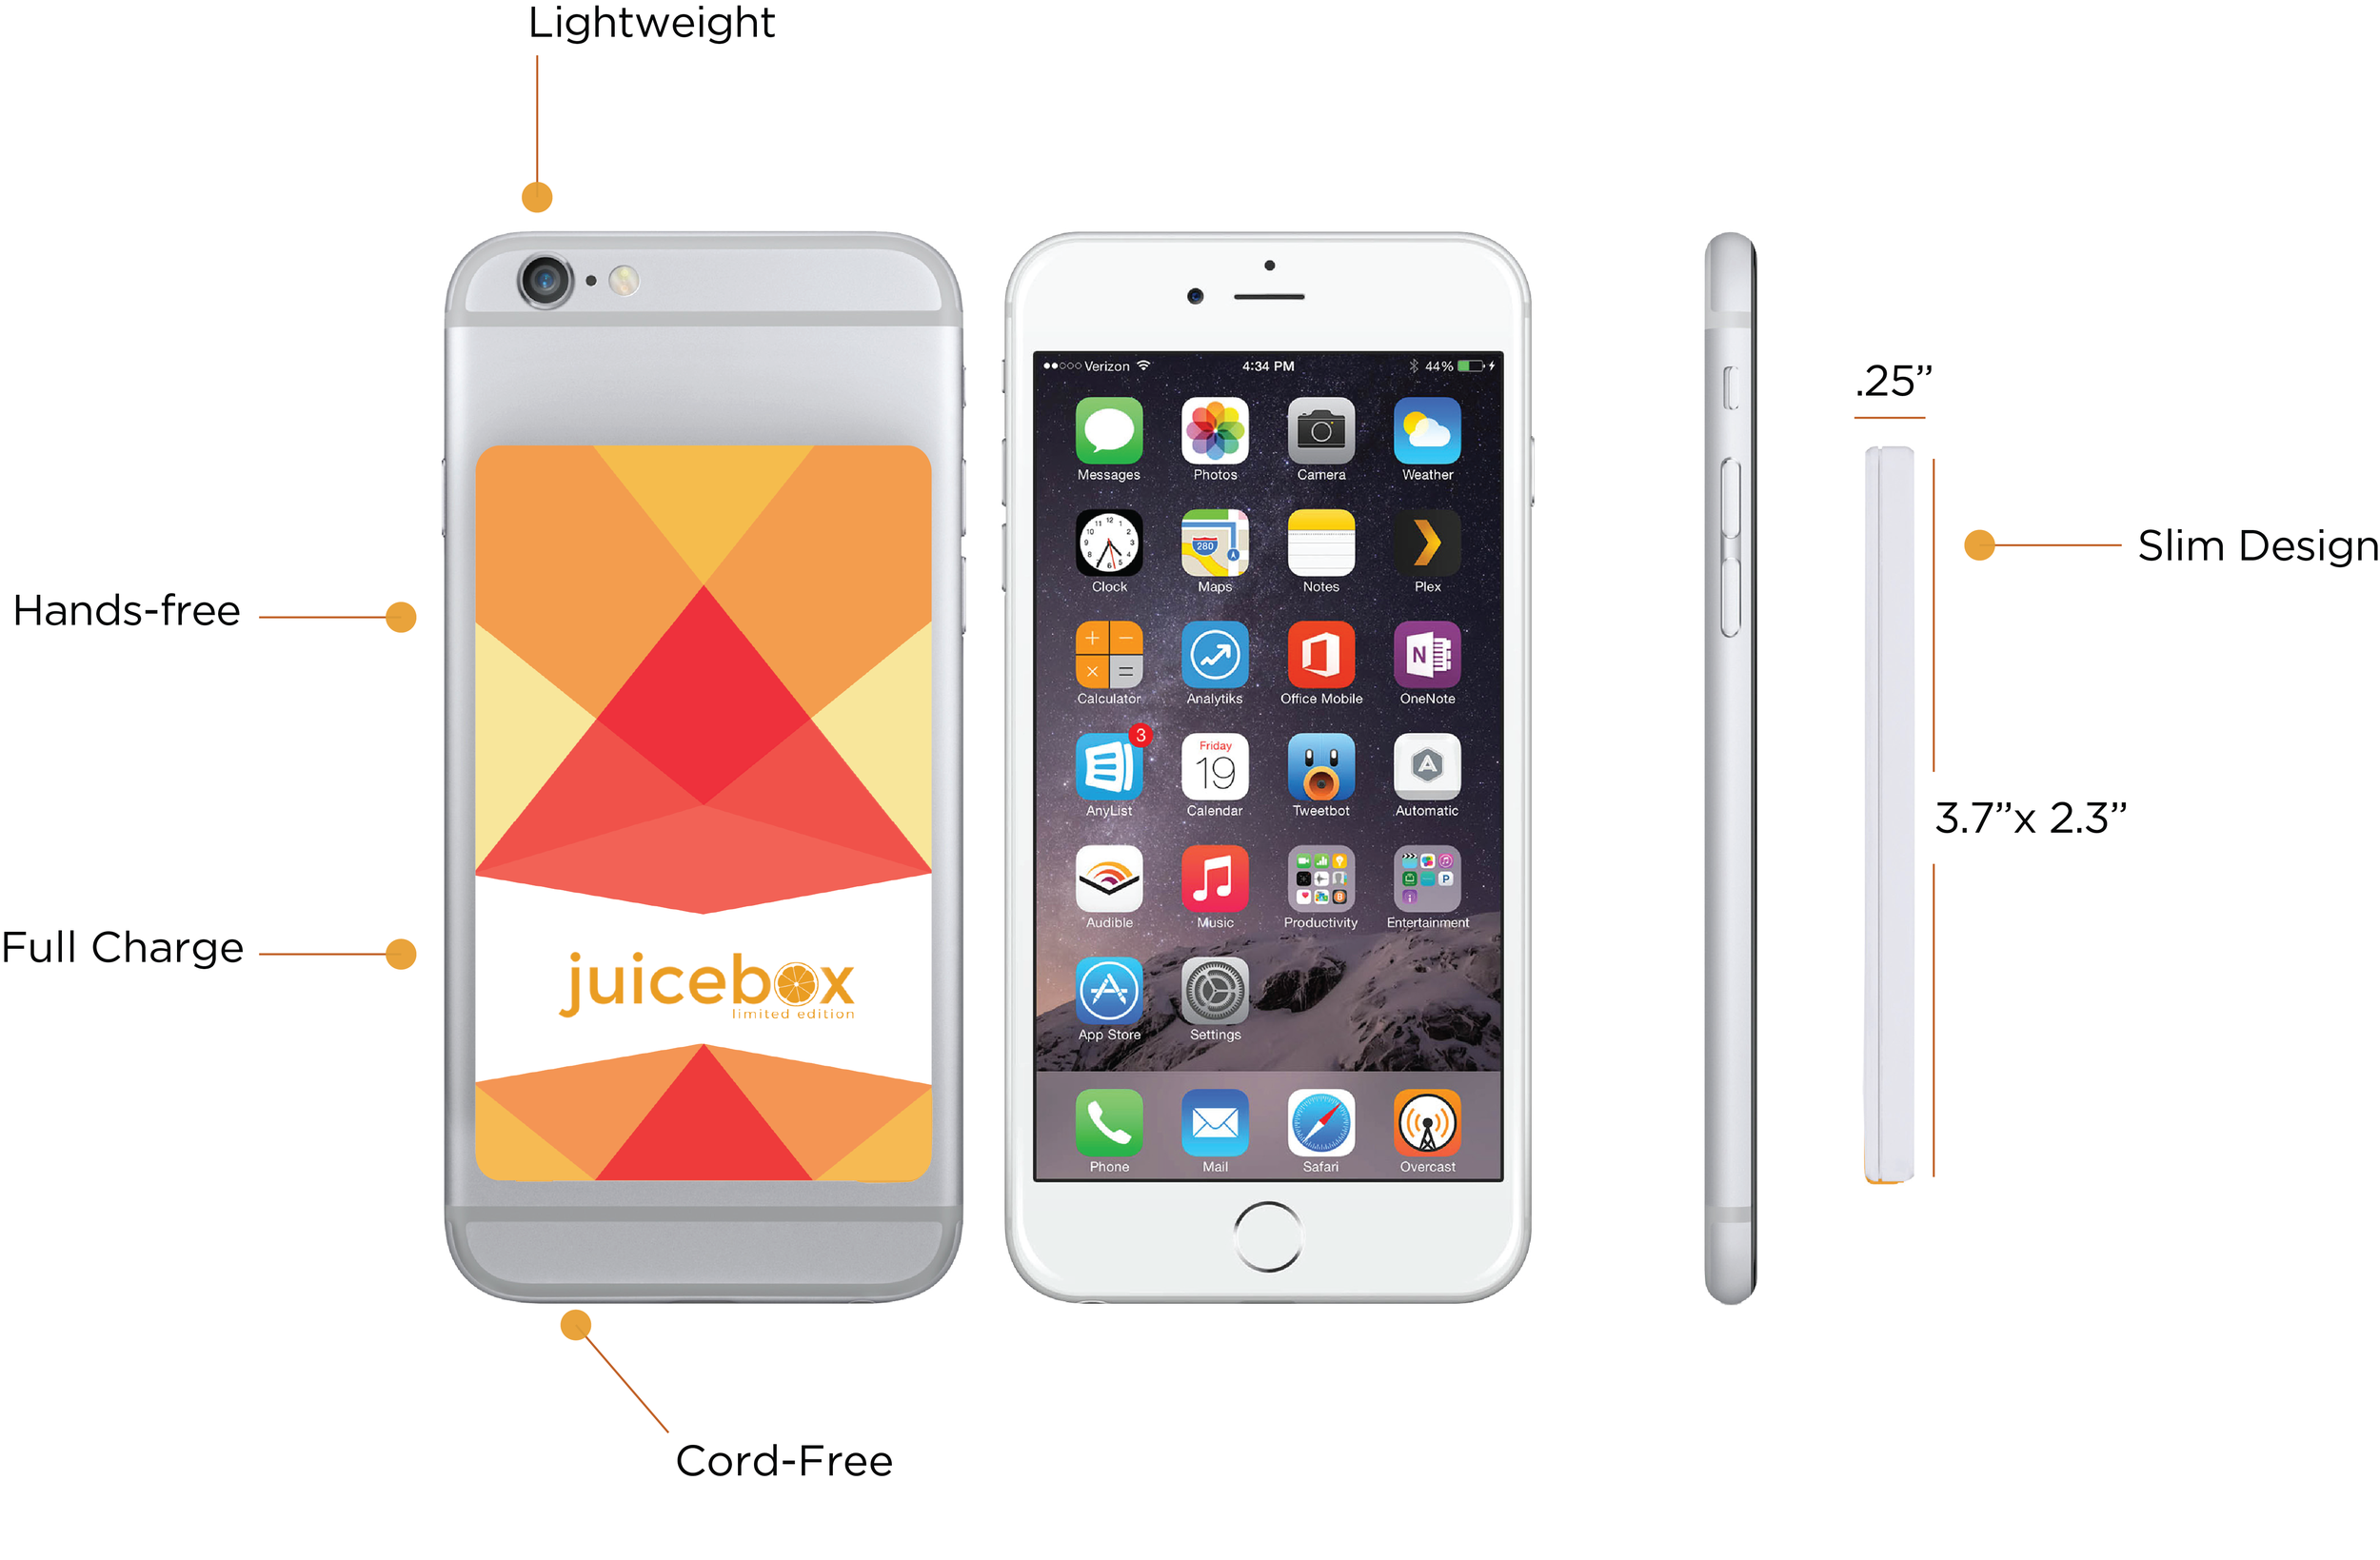 Juicebox :: Slim, lightweight portable phone charger